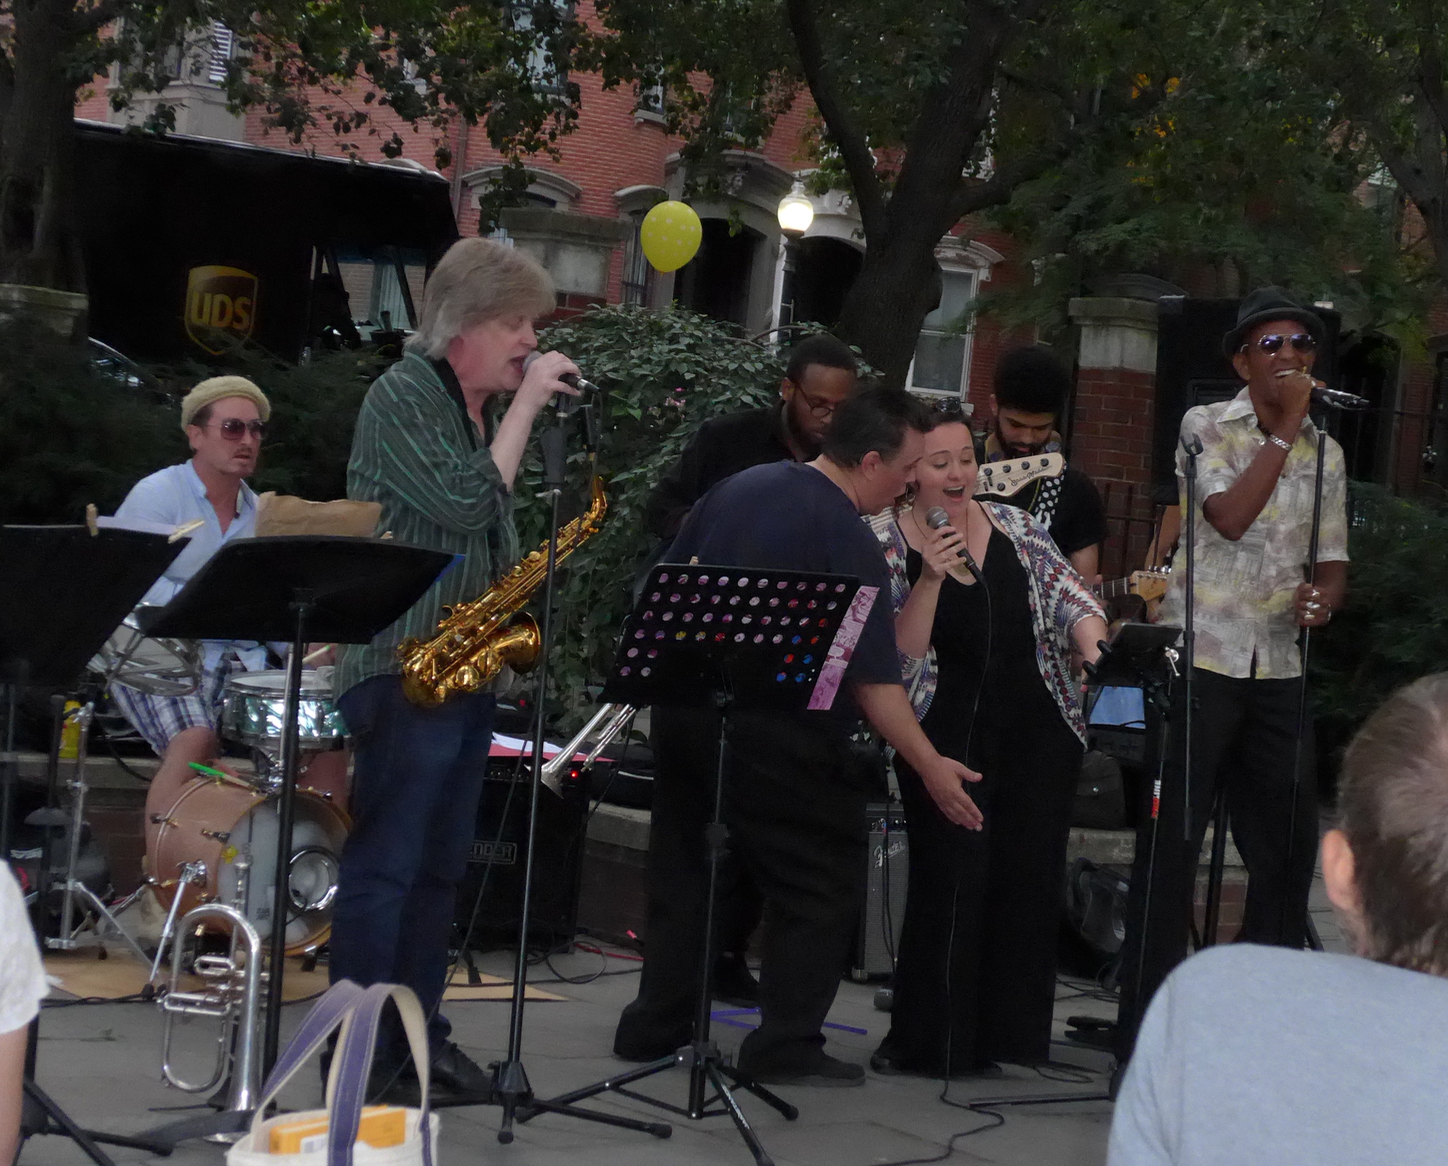 At the August 15 concert, with drummer Benny Benson and bass player Christoff Glaude in the background, saxophonist Pat Loomis, trumpeter Scott Aruda,Sarah Seminski and Nephtaliem McCrary sang their hearts out with Louis Prima's  Just a Gigolo and I Ain't Got Nobody